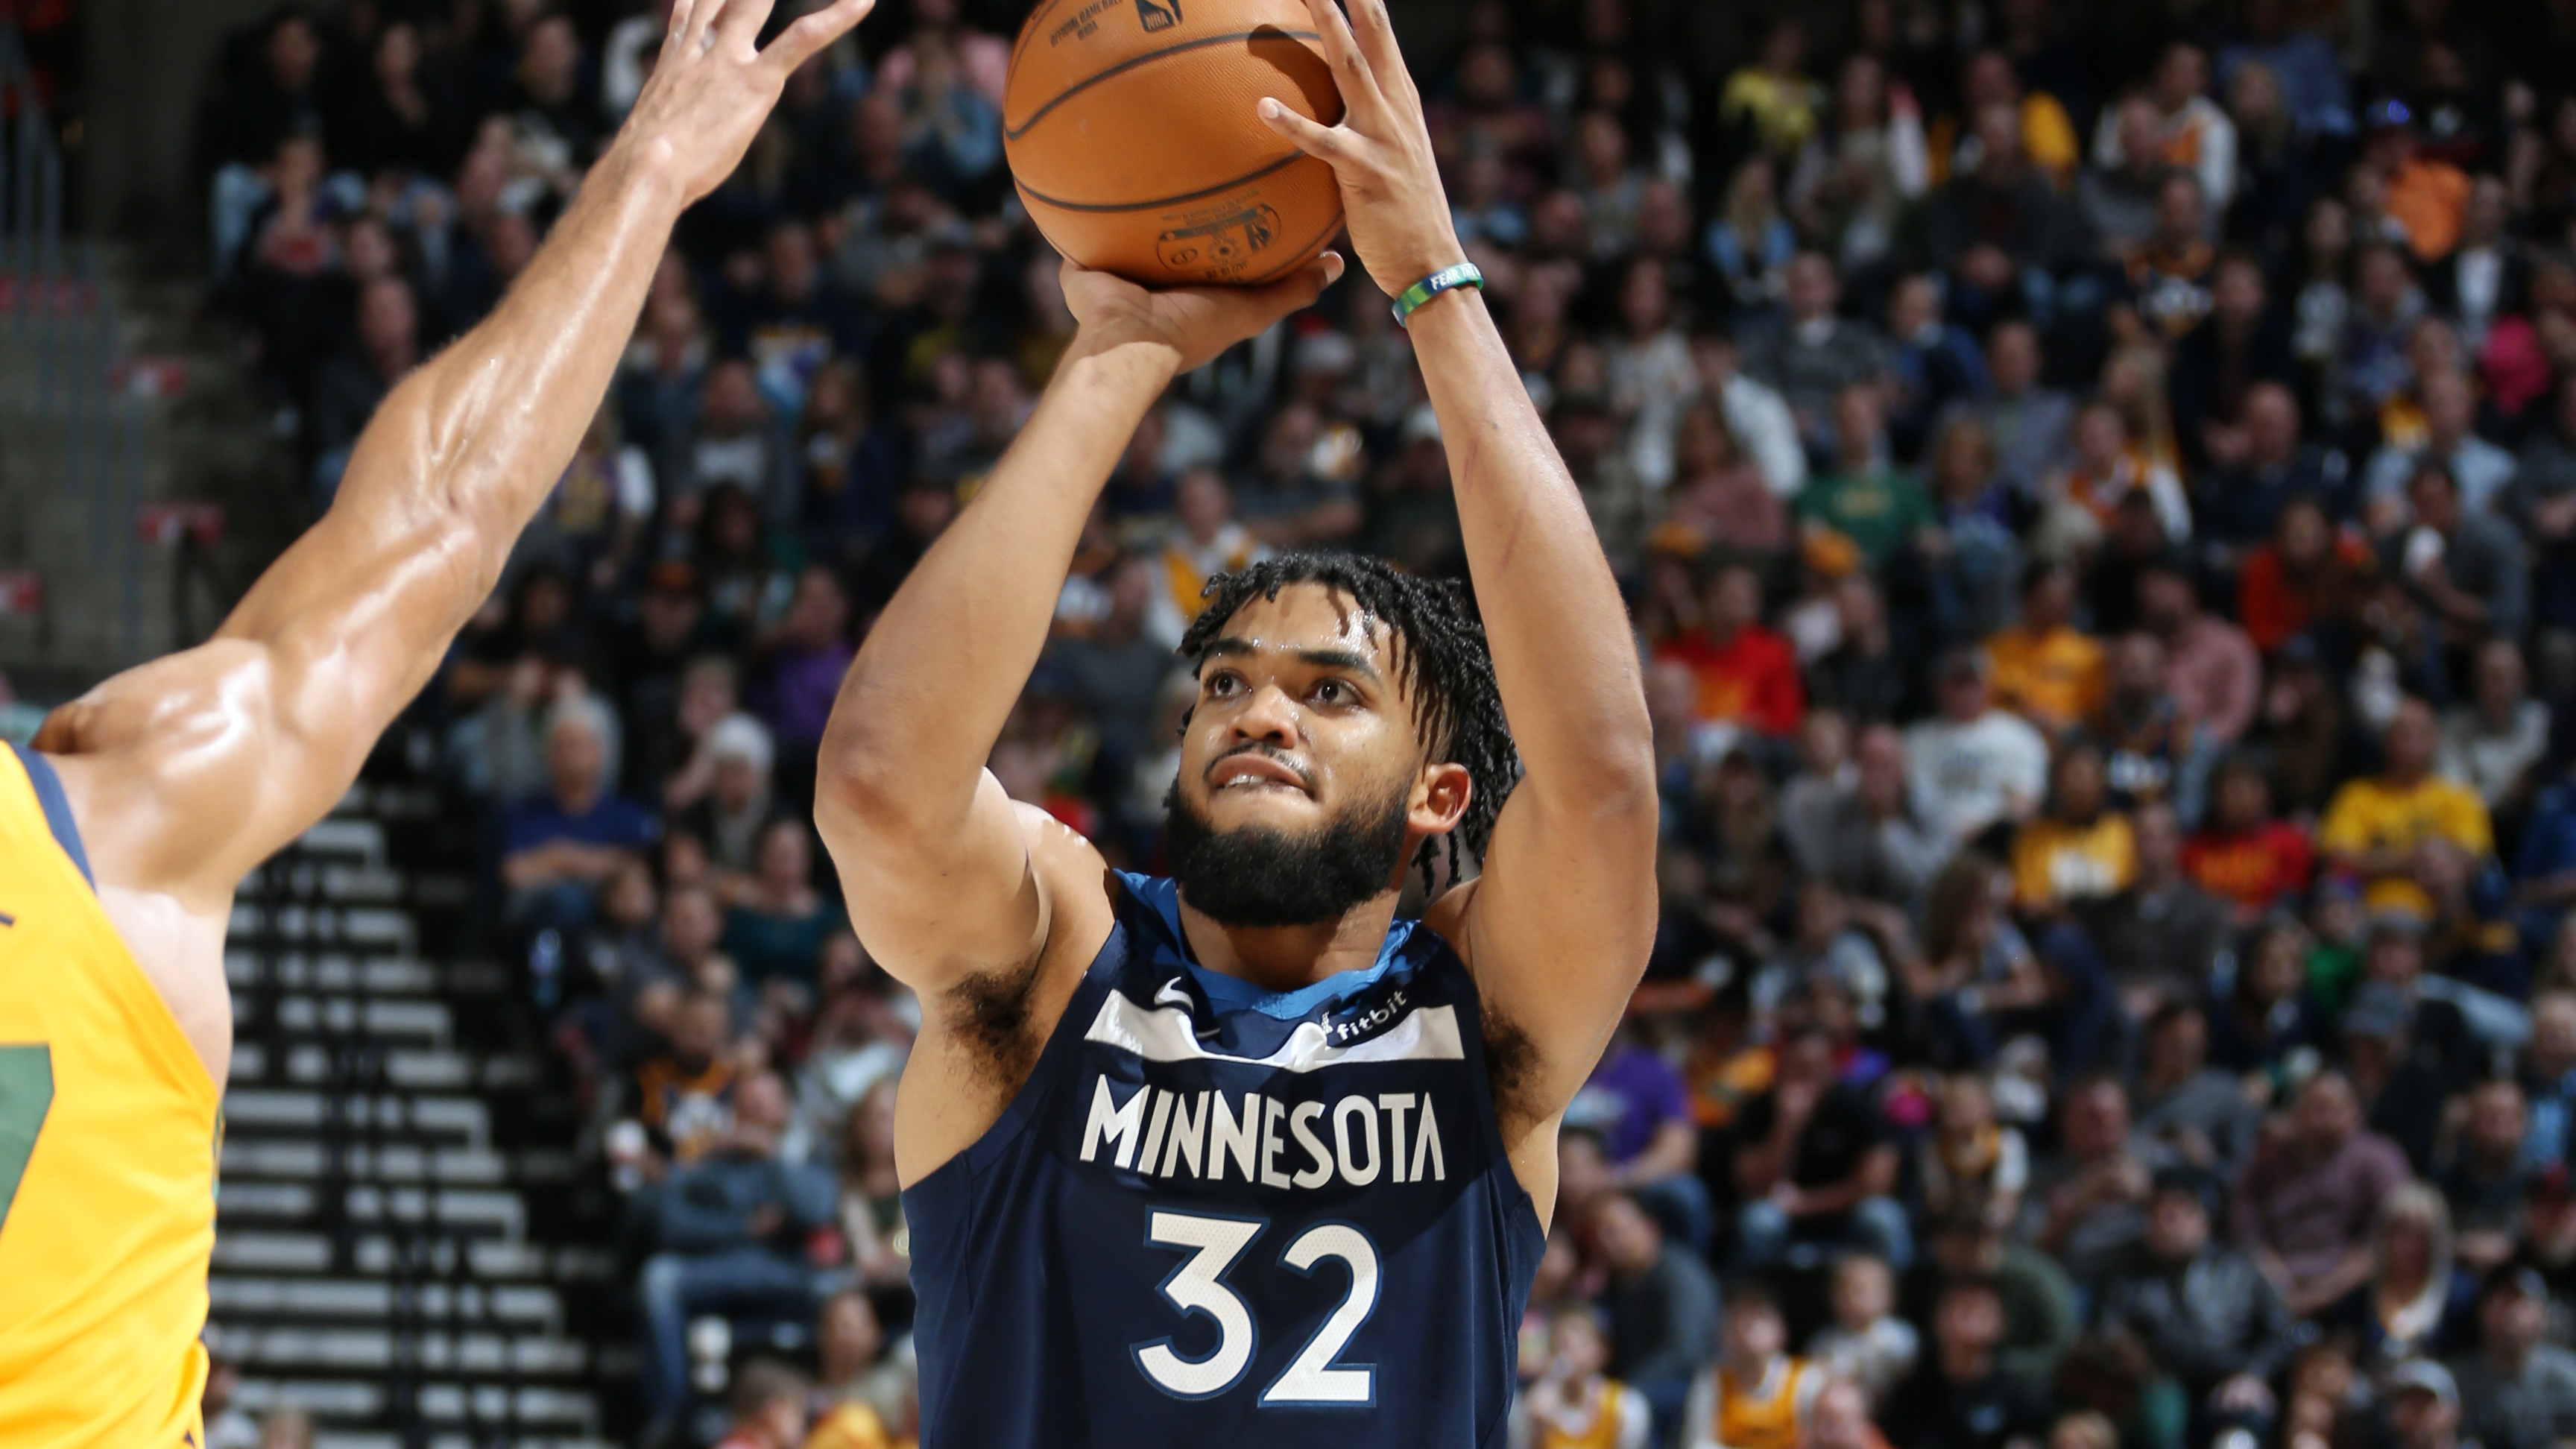 19.11.19. Обзор. GAME RECAP: Timberwolves 112, Jazz 102